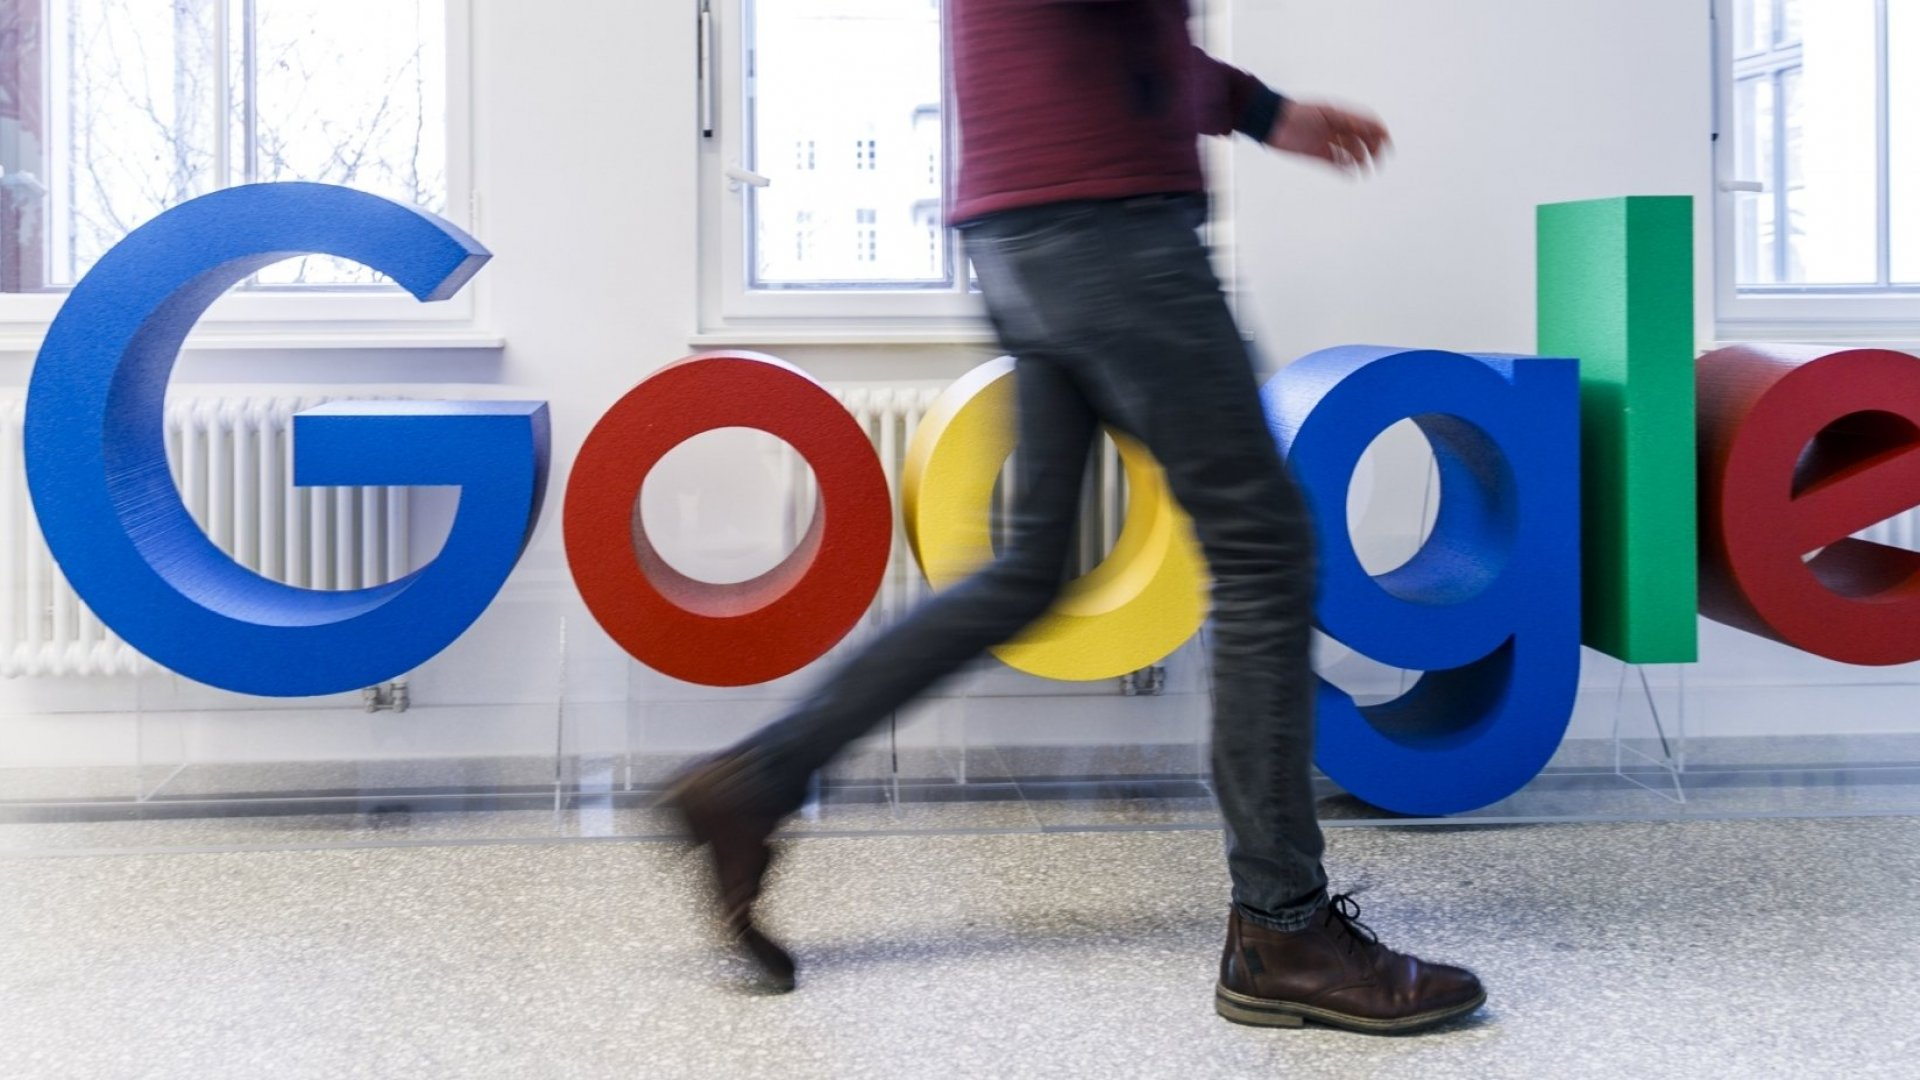 Google Recruiters Use These 3 Rules of Communication When Following Up With Candidates